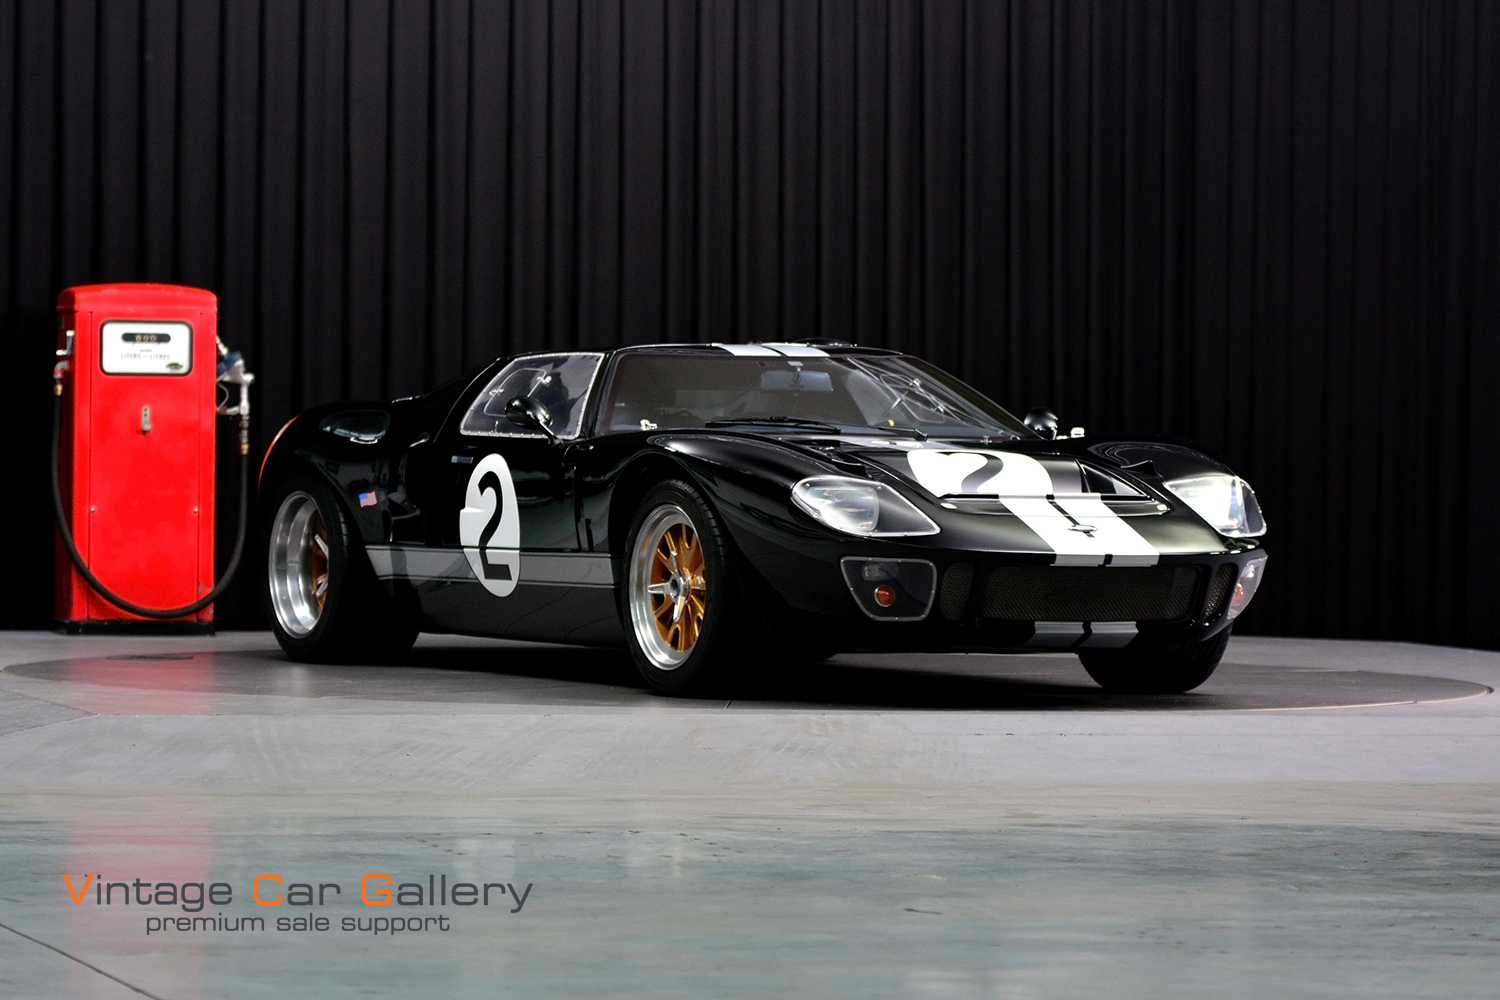 Sold to Austria - Ford GT 40